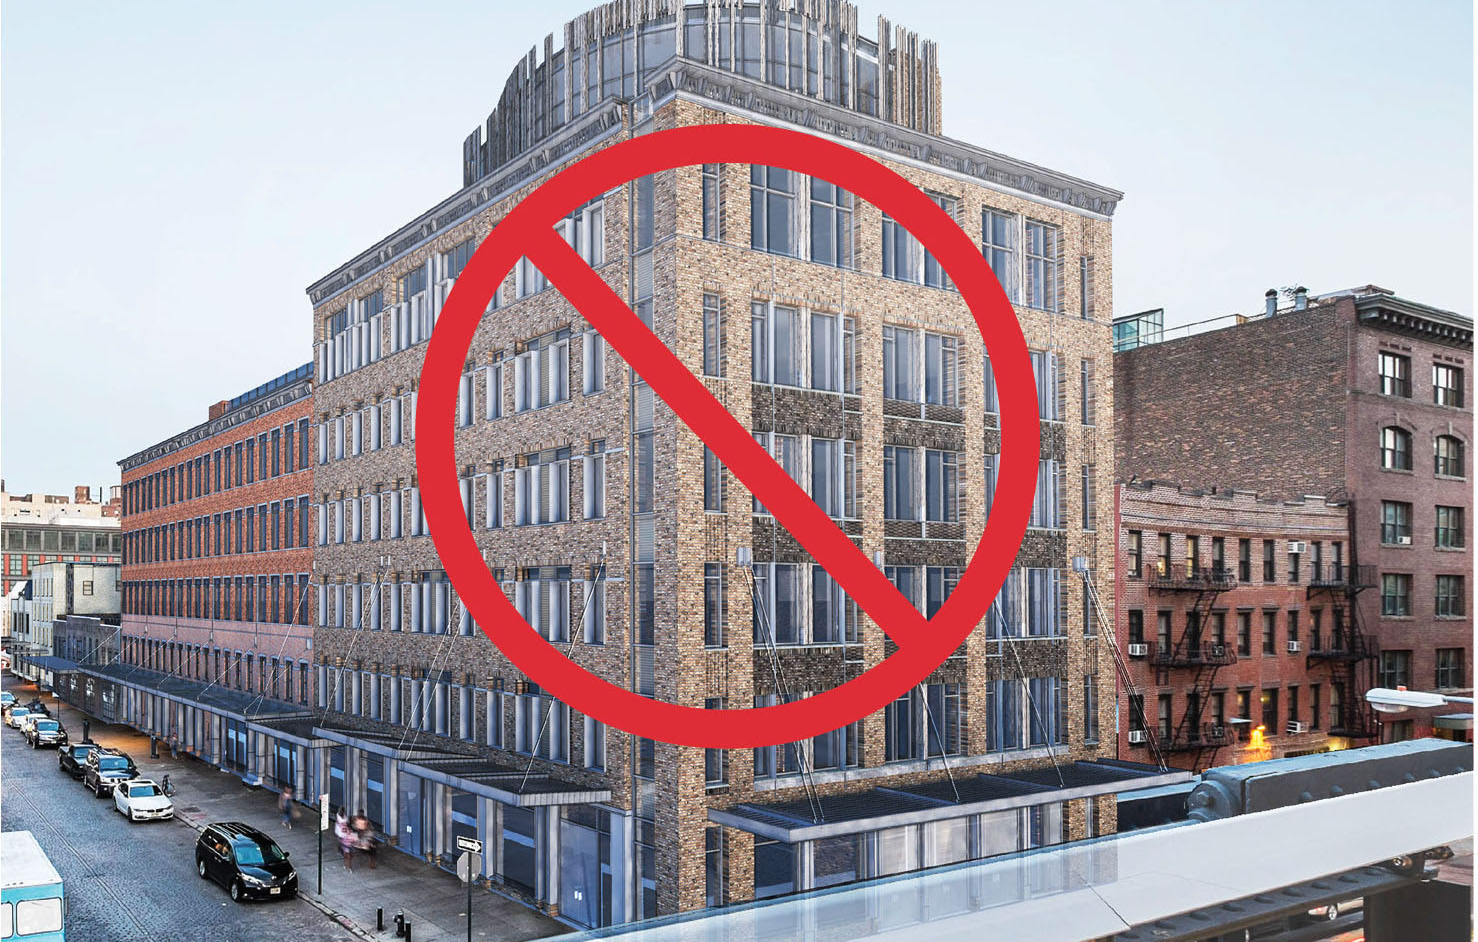 Gansevoort Market Plan save gansevoort | stop the massive building plan